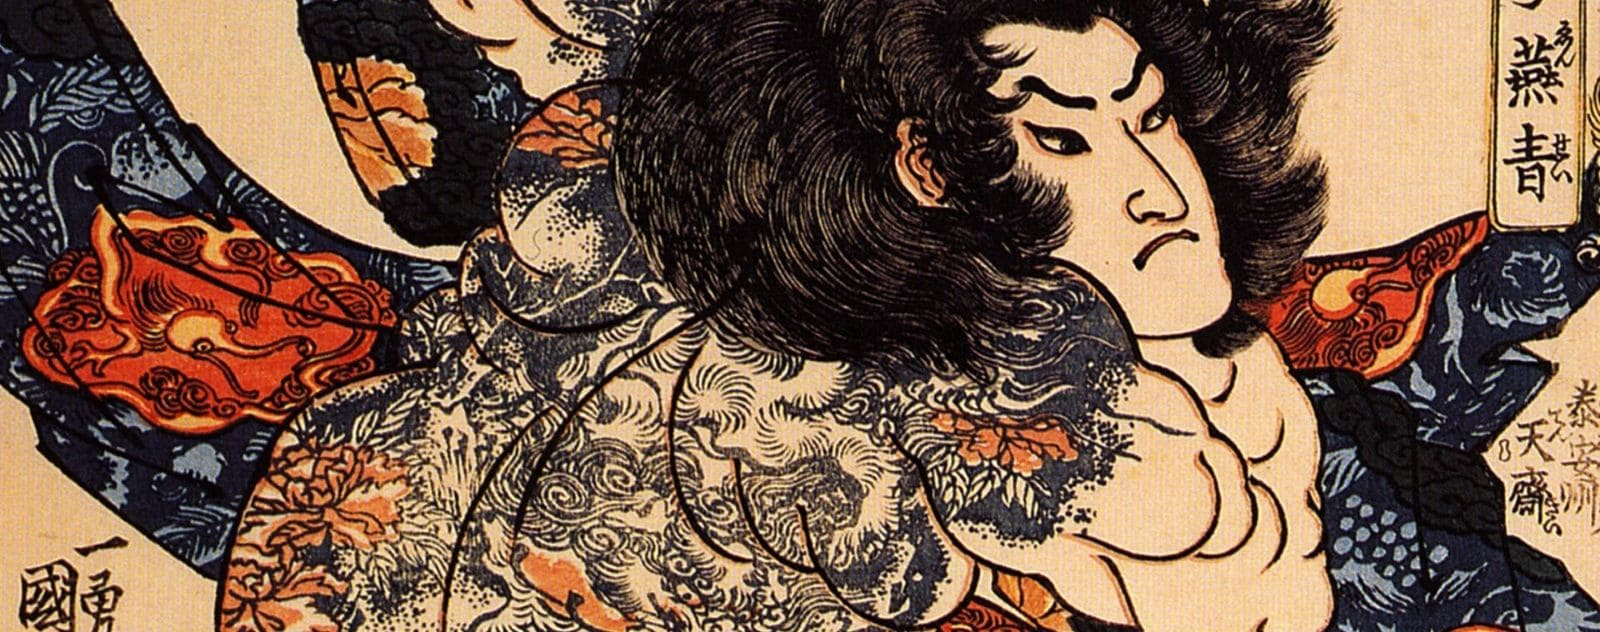 Irezumi tatouage japonais traditionnel